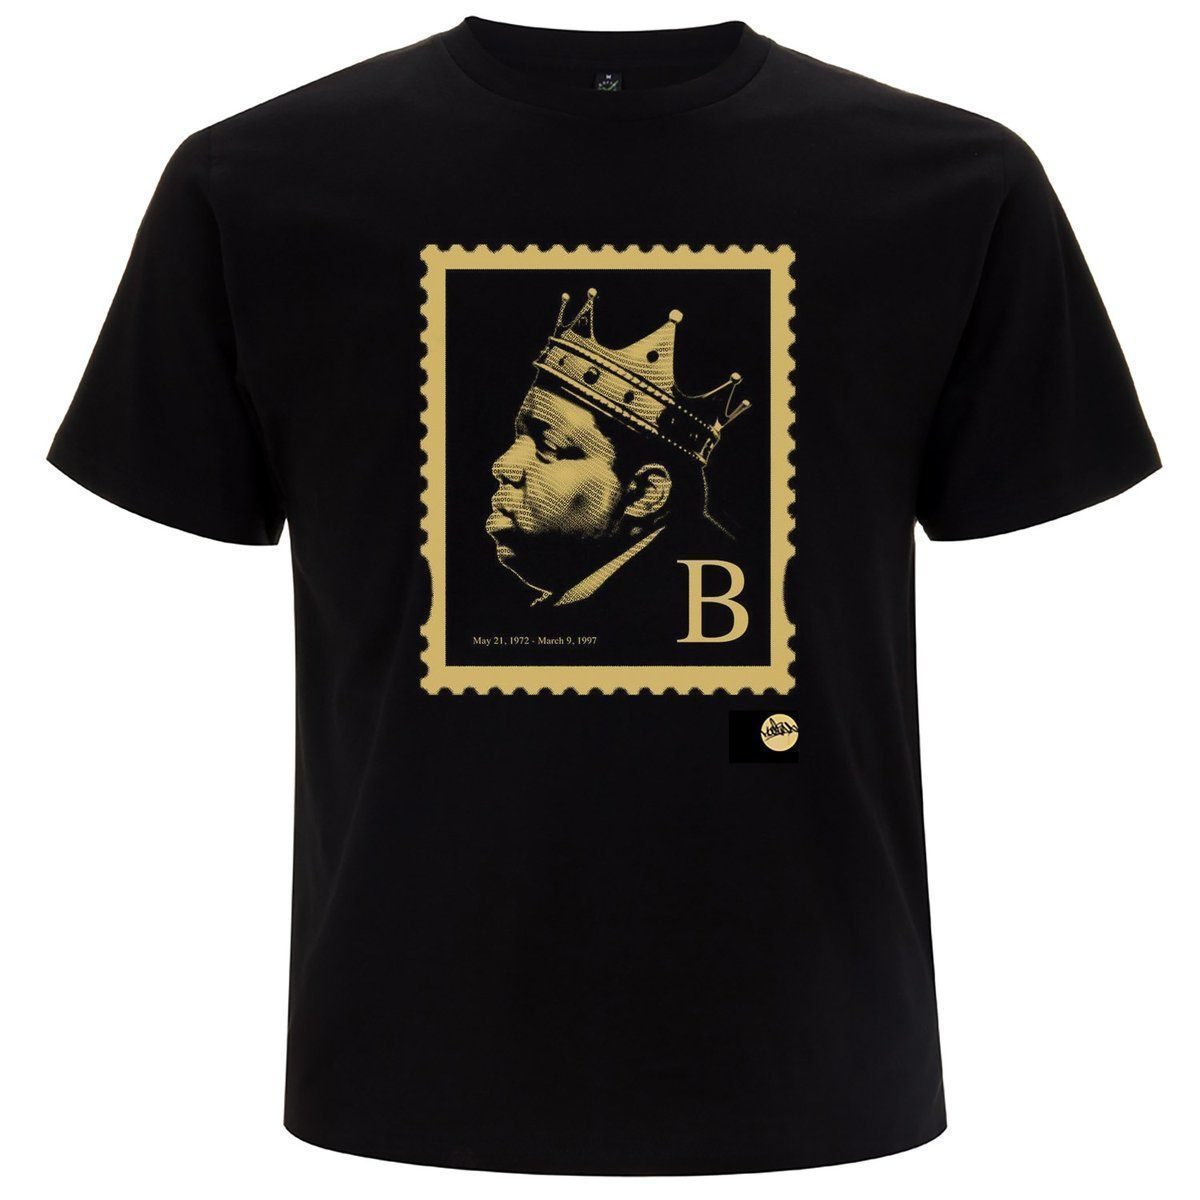 FRESH STOCK! The illest... the Biggie B' Stamp TShirt by @madina_design order here >>  <<  #hiphop #stamp #stamps #summer #biggie #biggiesmalls #theillest #brooklyn #bedstuy #notorious #clothing #fashion #streetwear #blackandgold RT